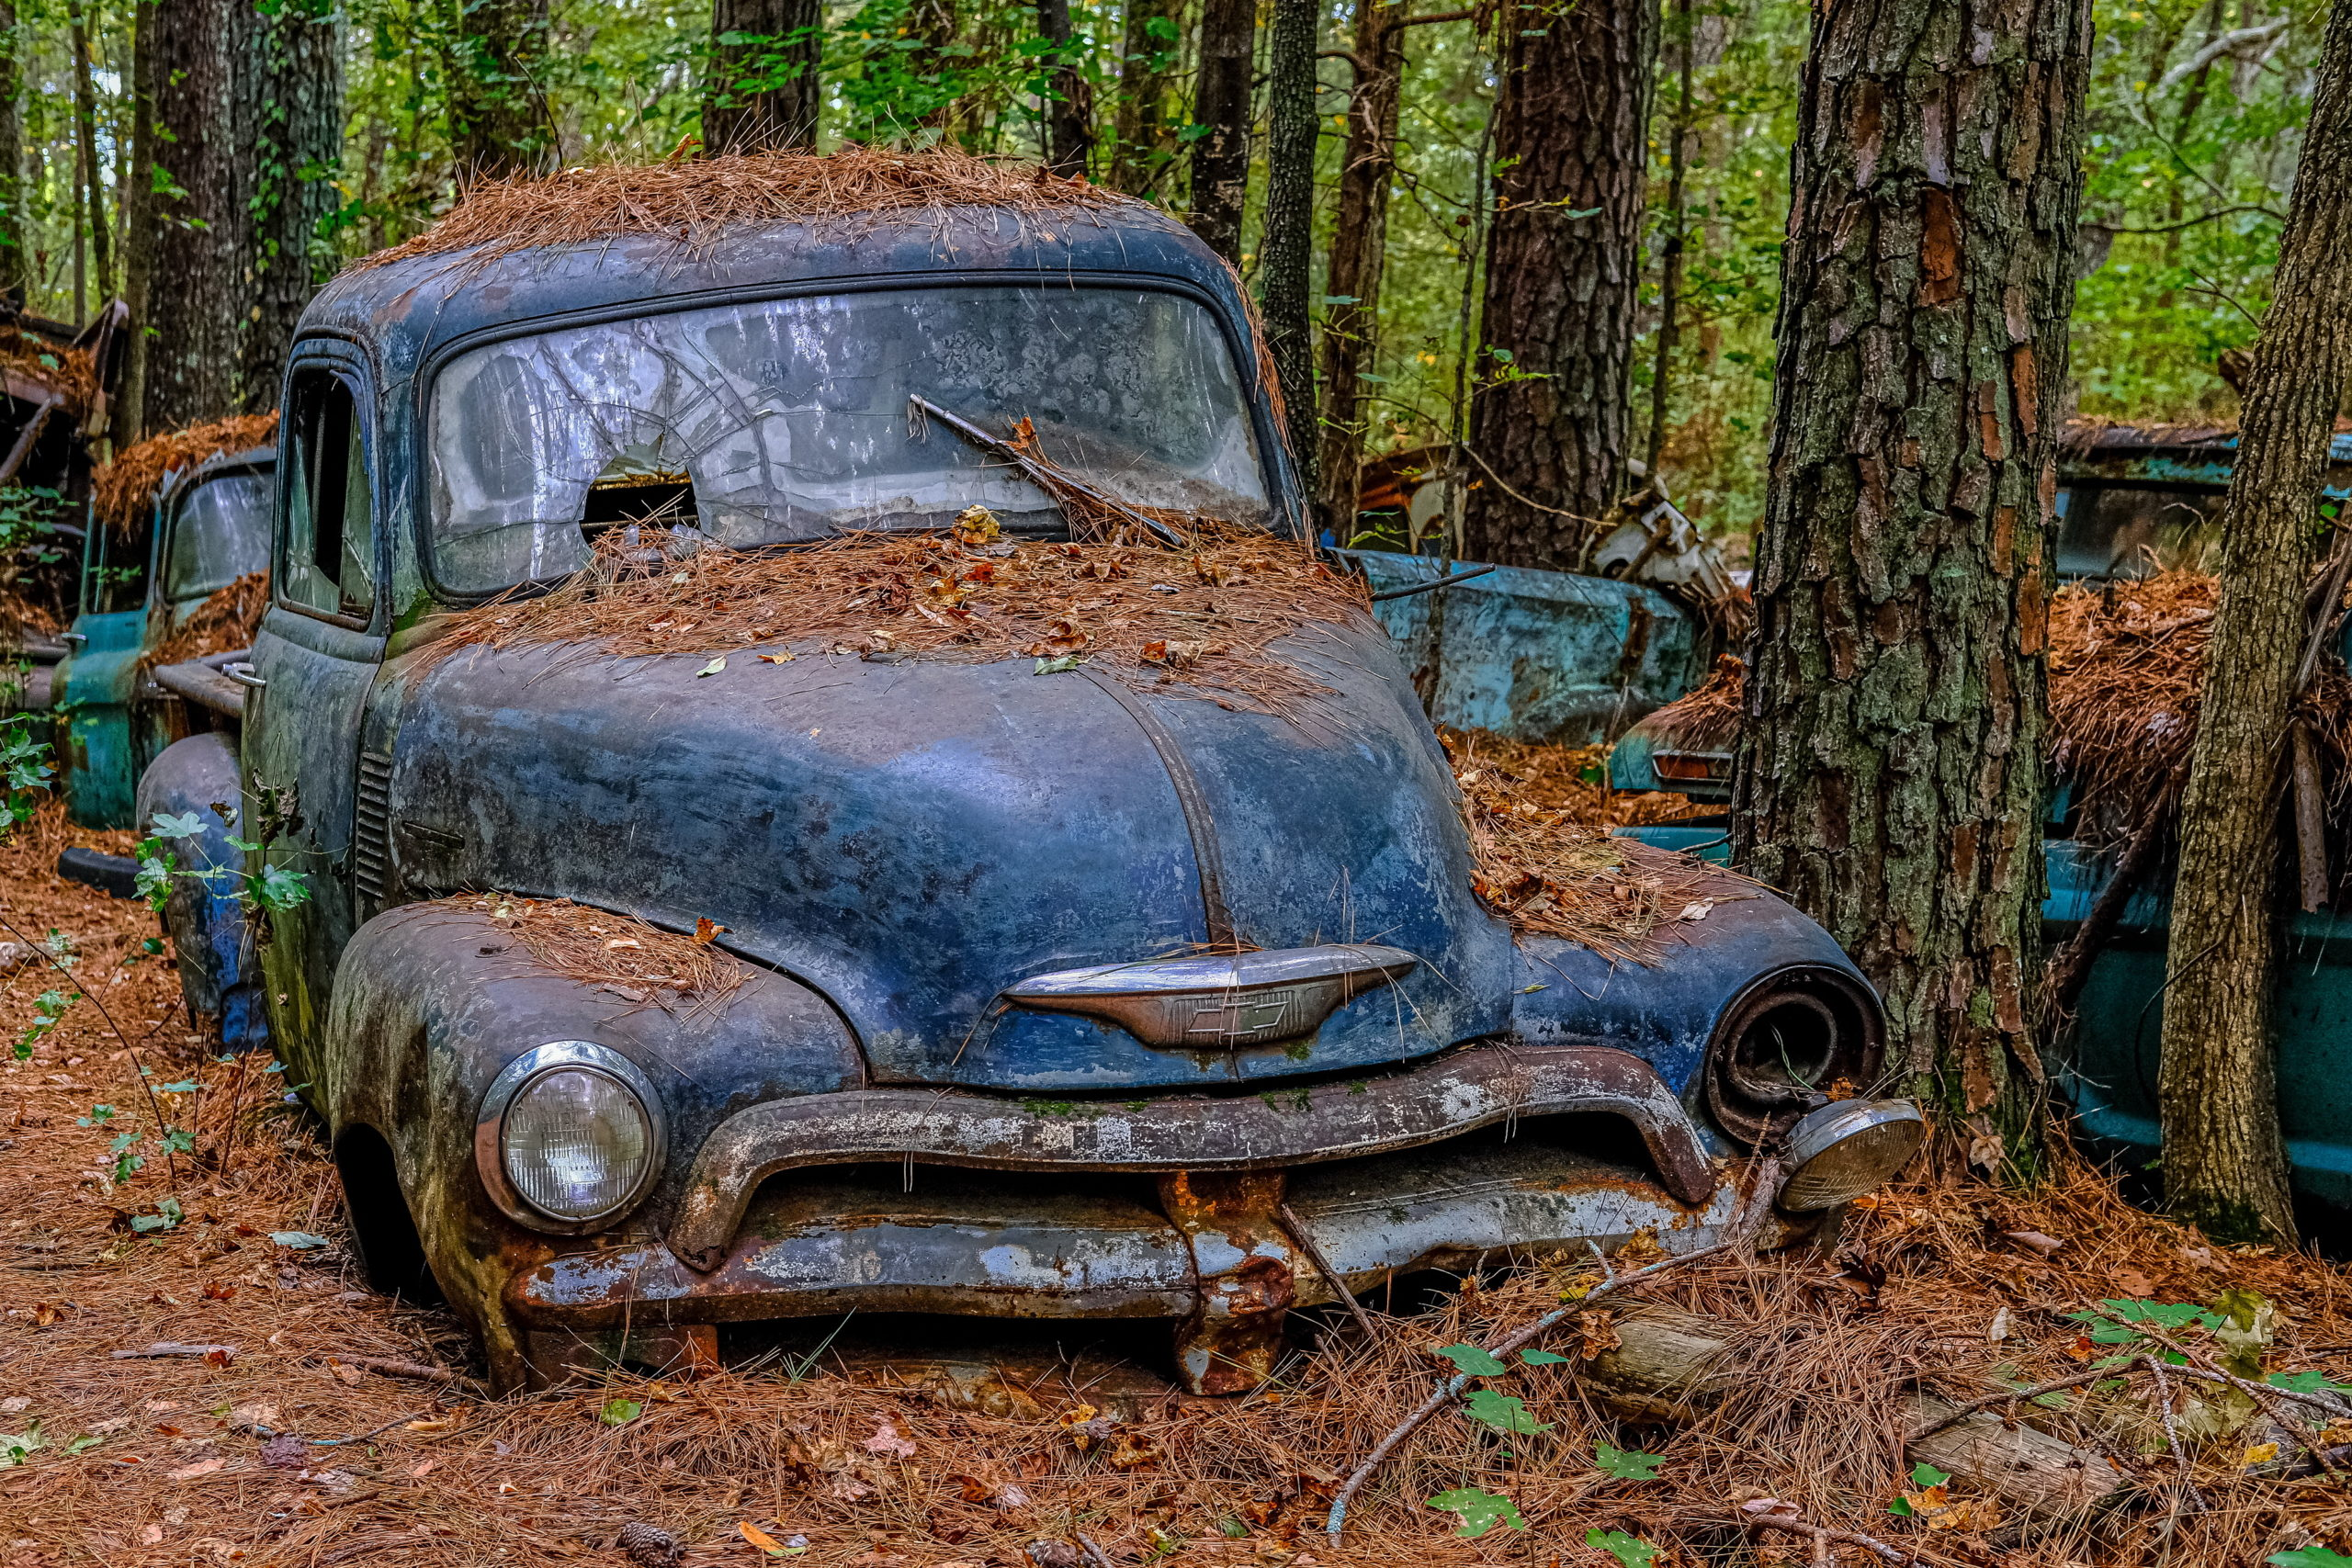 Cash for Junk Cars Peabody, MA — We Buy Junk Cars in Almost Any Condition!